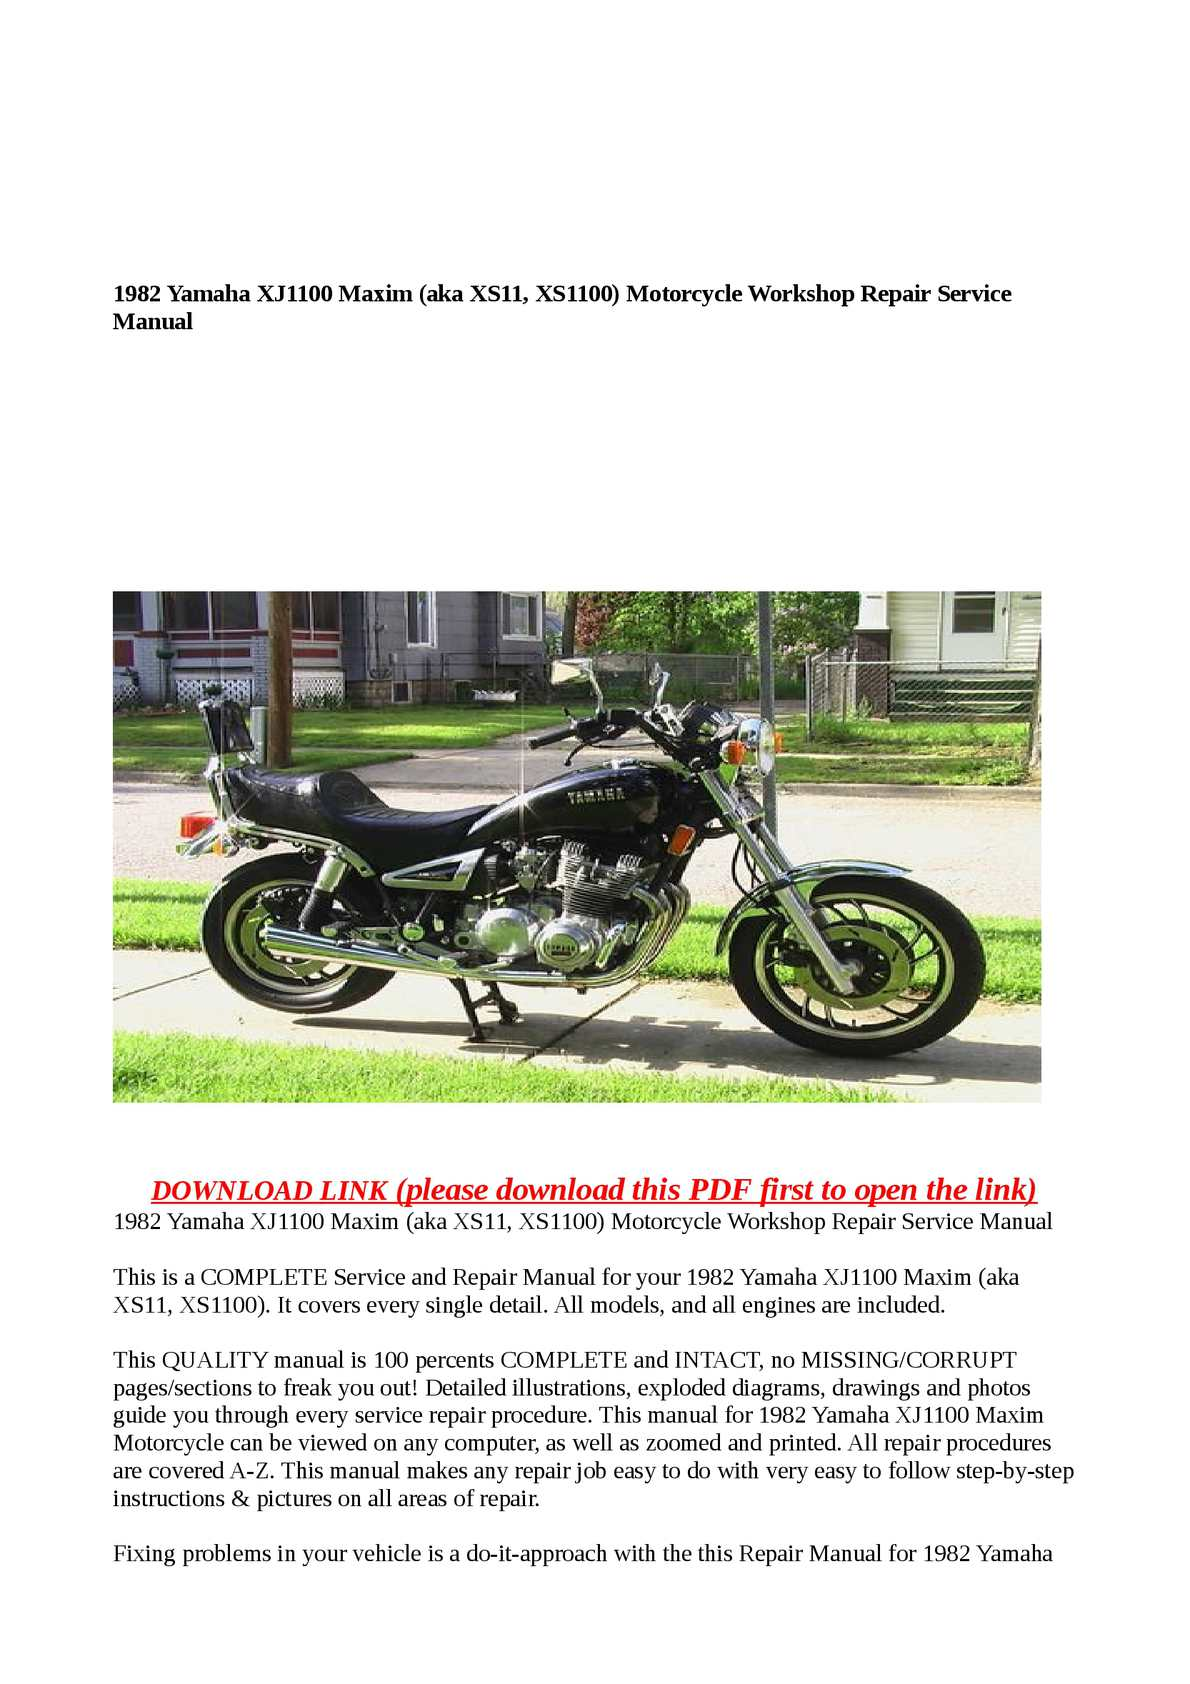 download now yamaha xj1100 xj 1100 maxim service repair workshop manual instant